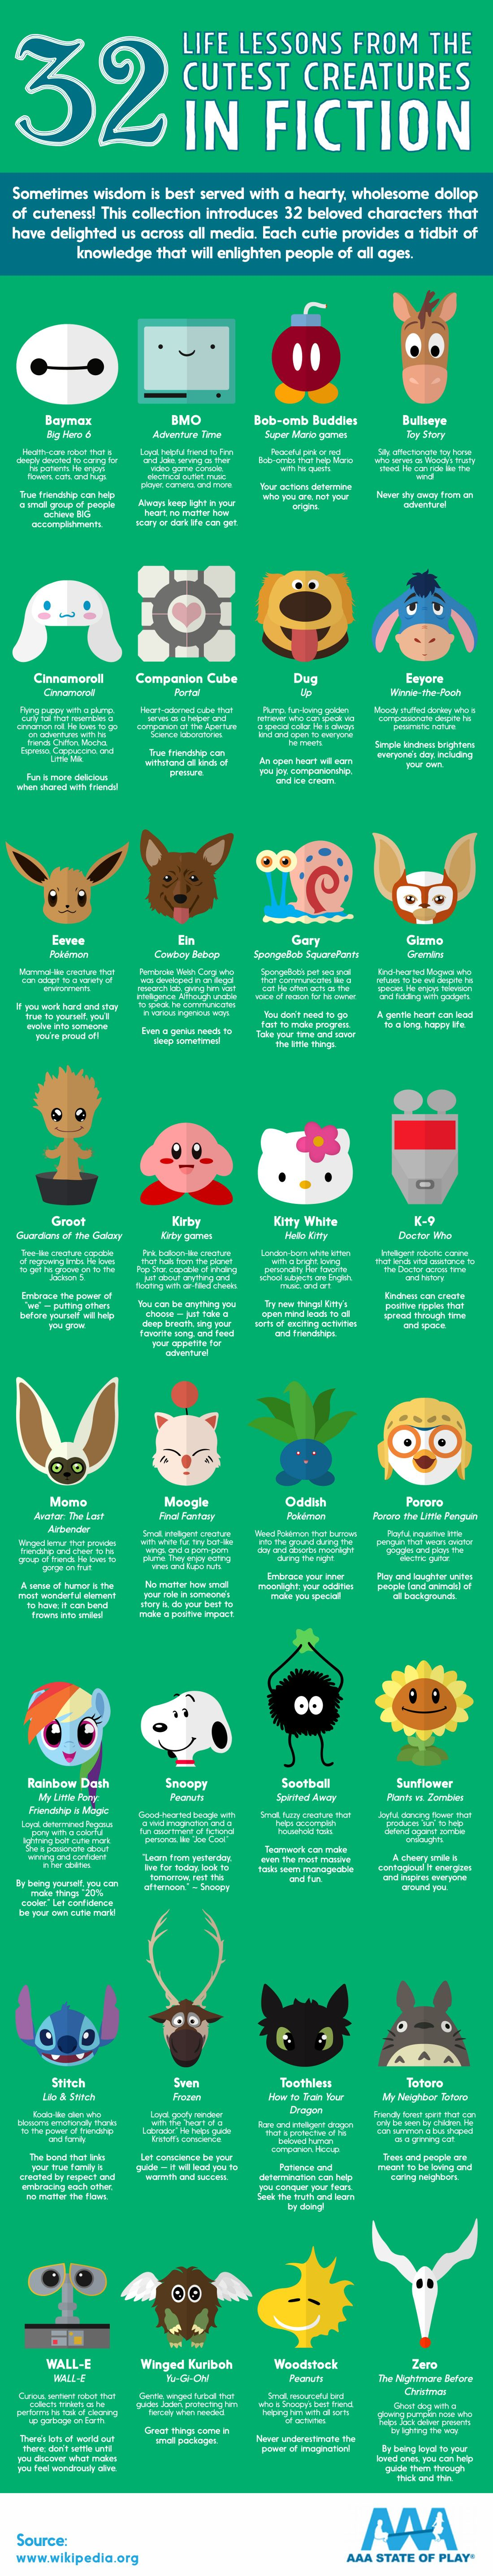 32 Life Lessons from the Cutest Creatures in Fiction #infographic